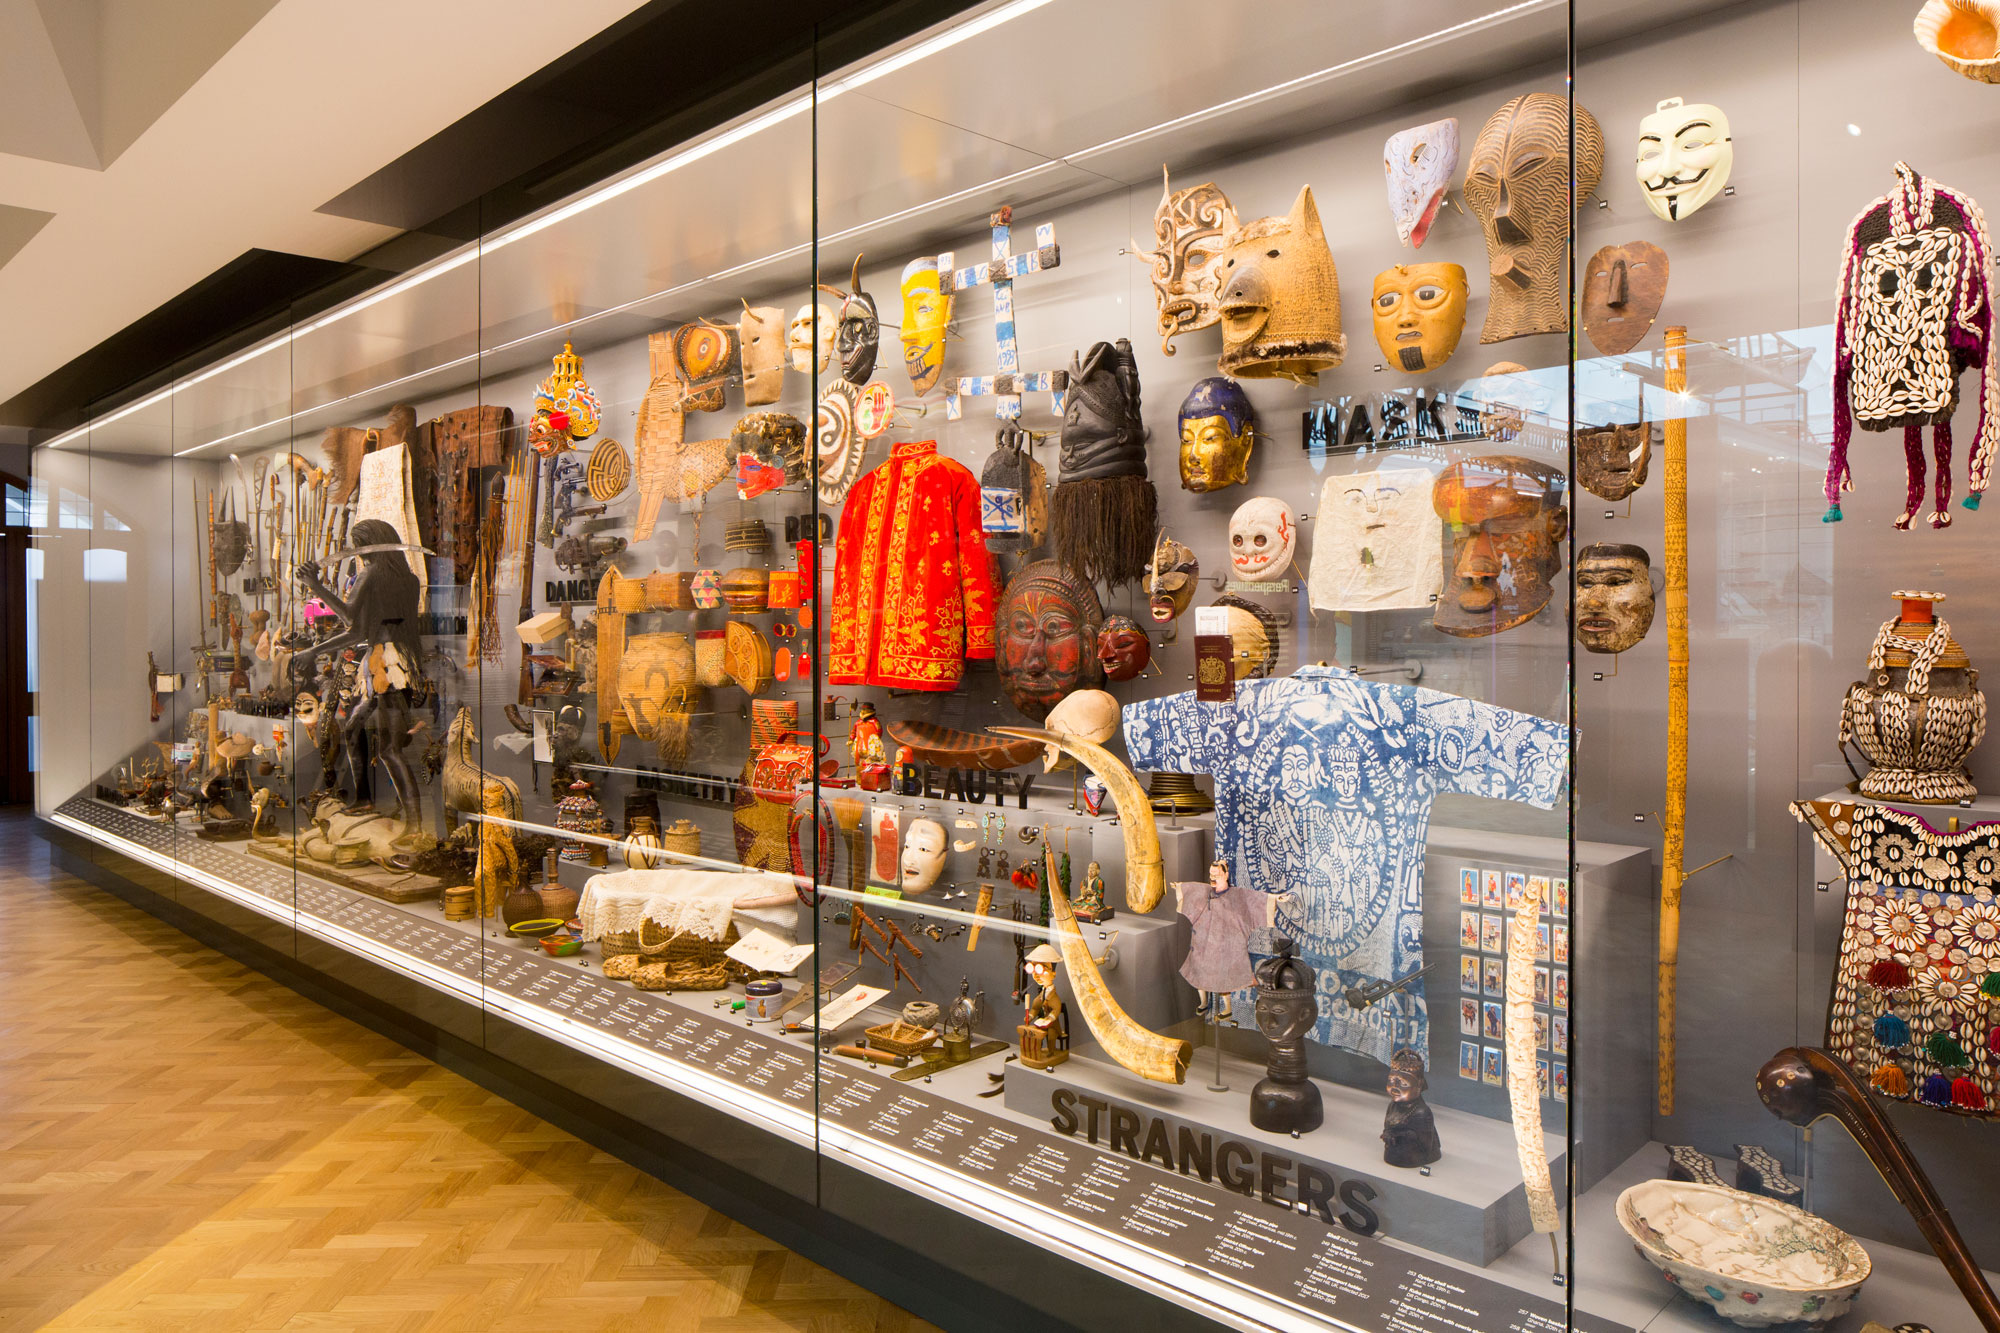 A glass case, seen diagonally, filled with objects grouped by category, like shells, masks, red things, strangers and danger.